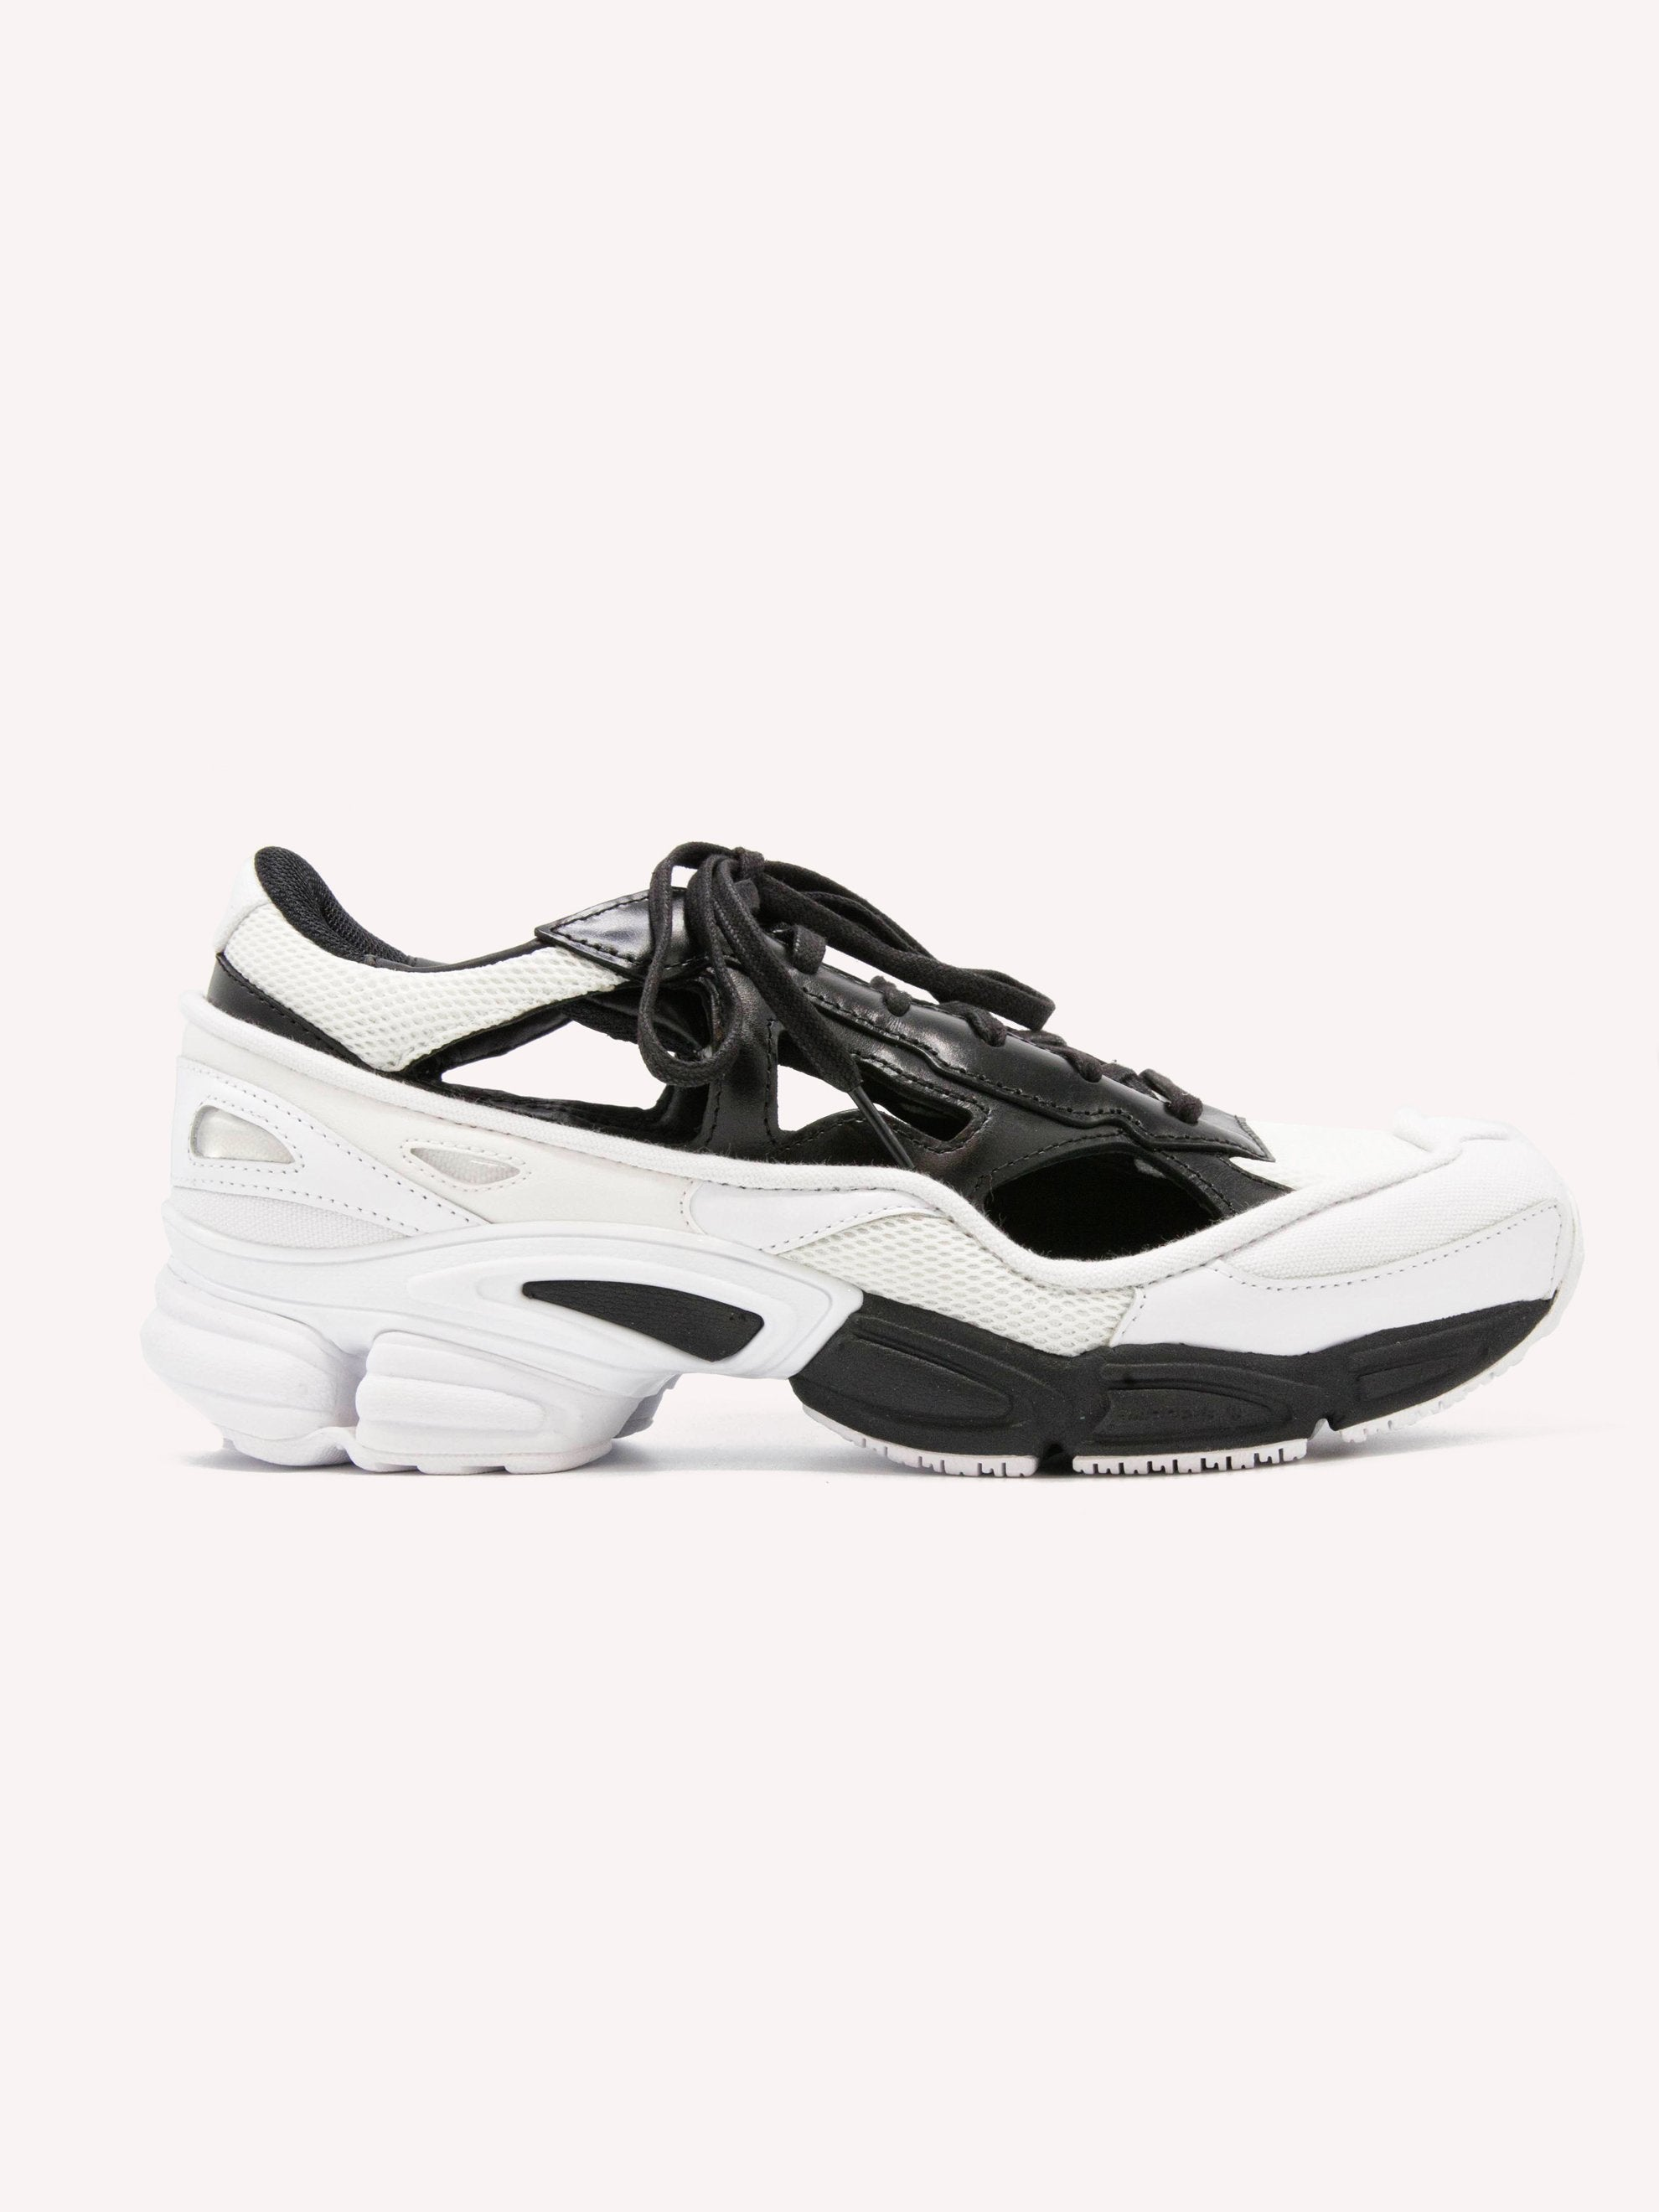 Black/Cream White Replicant Ozweego (Limited Pack by Adidas) 1